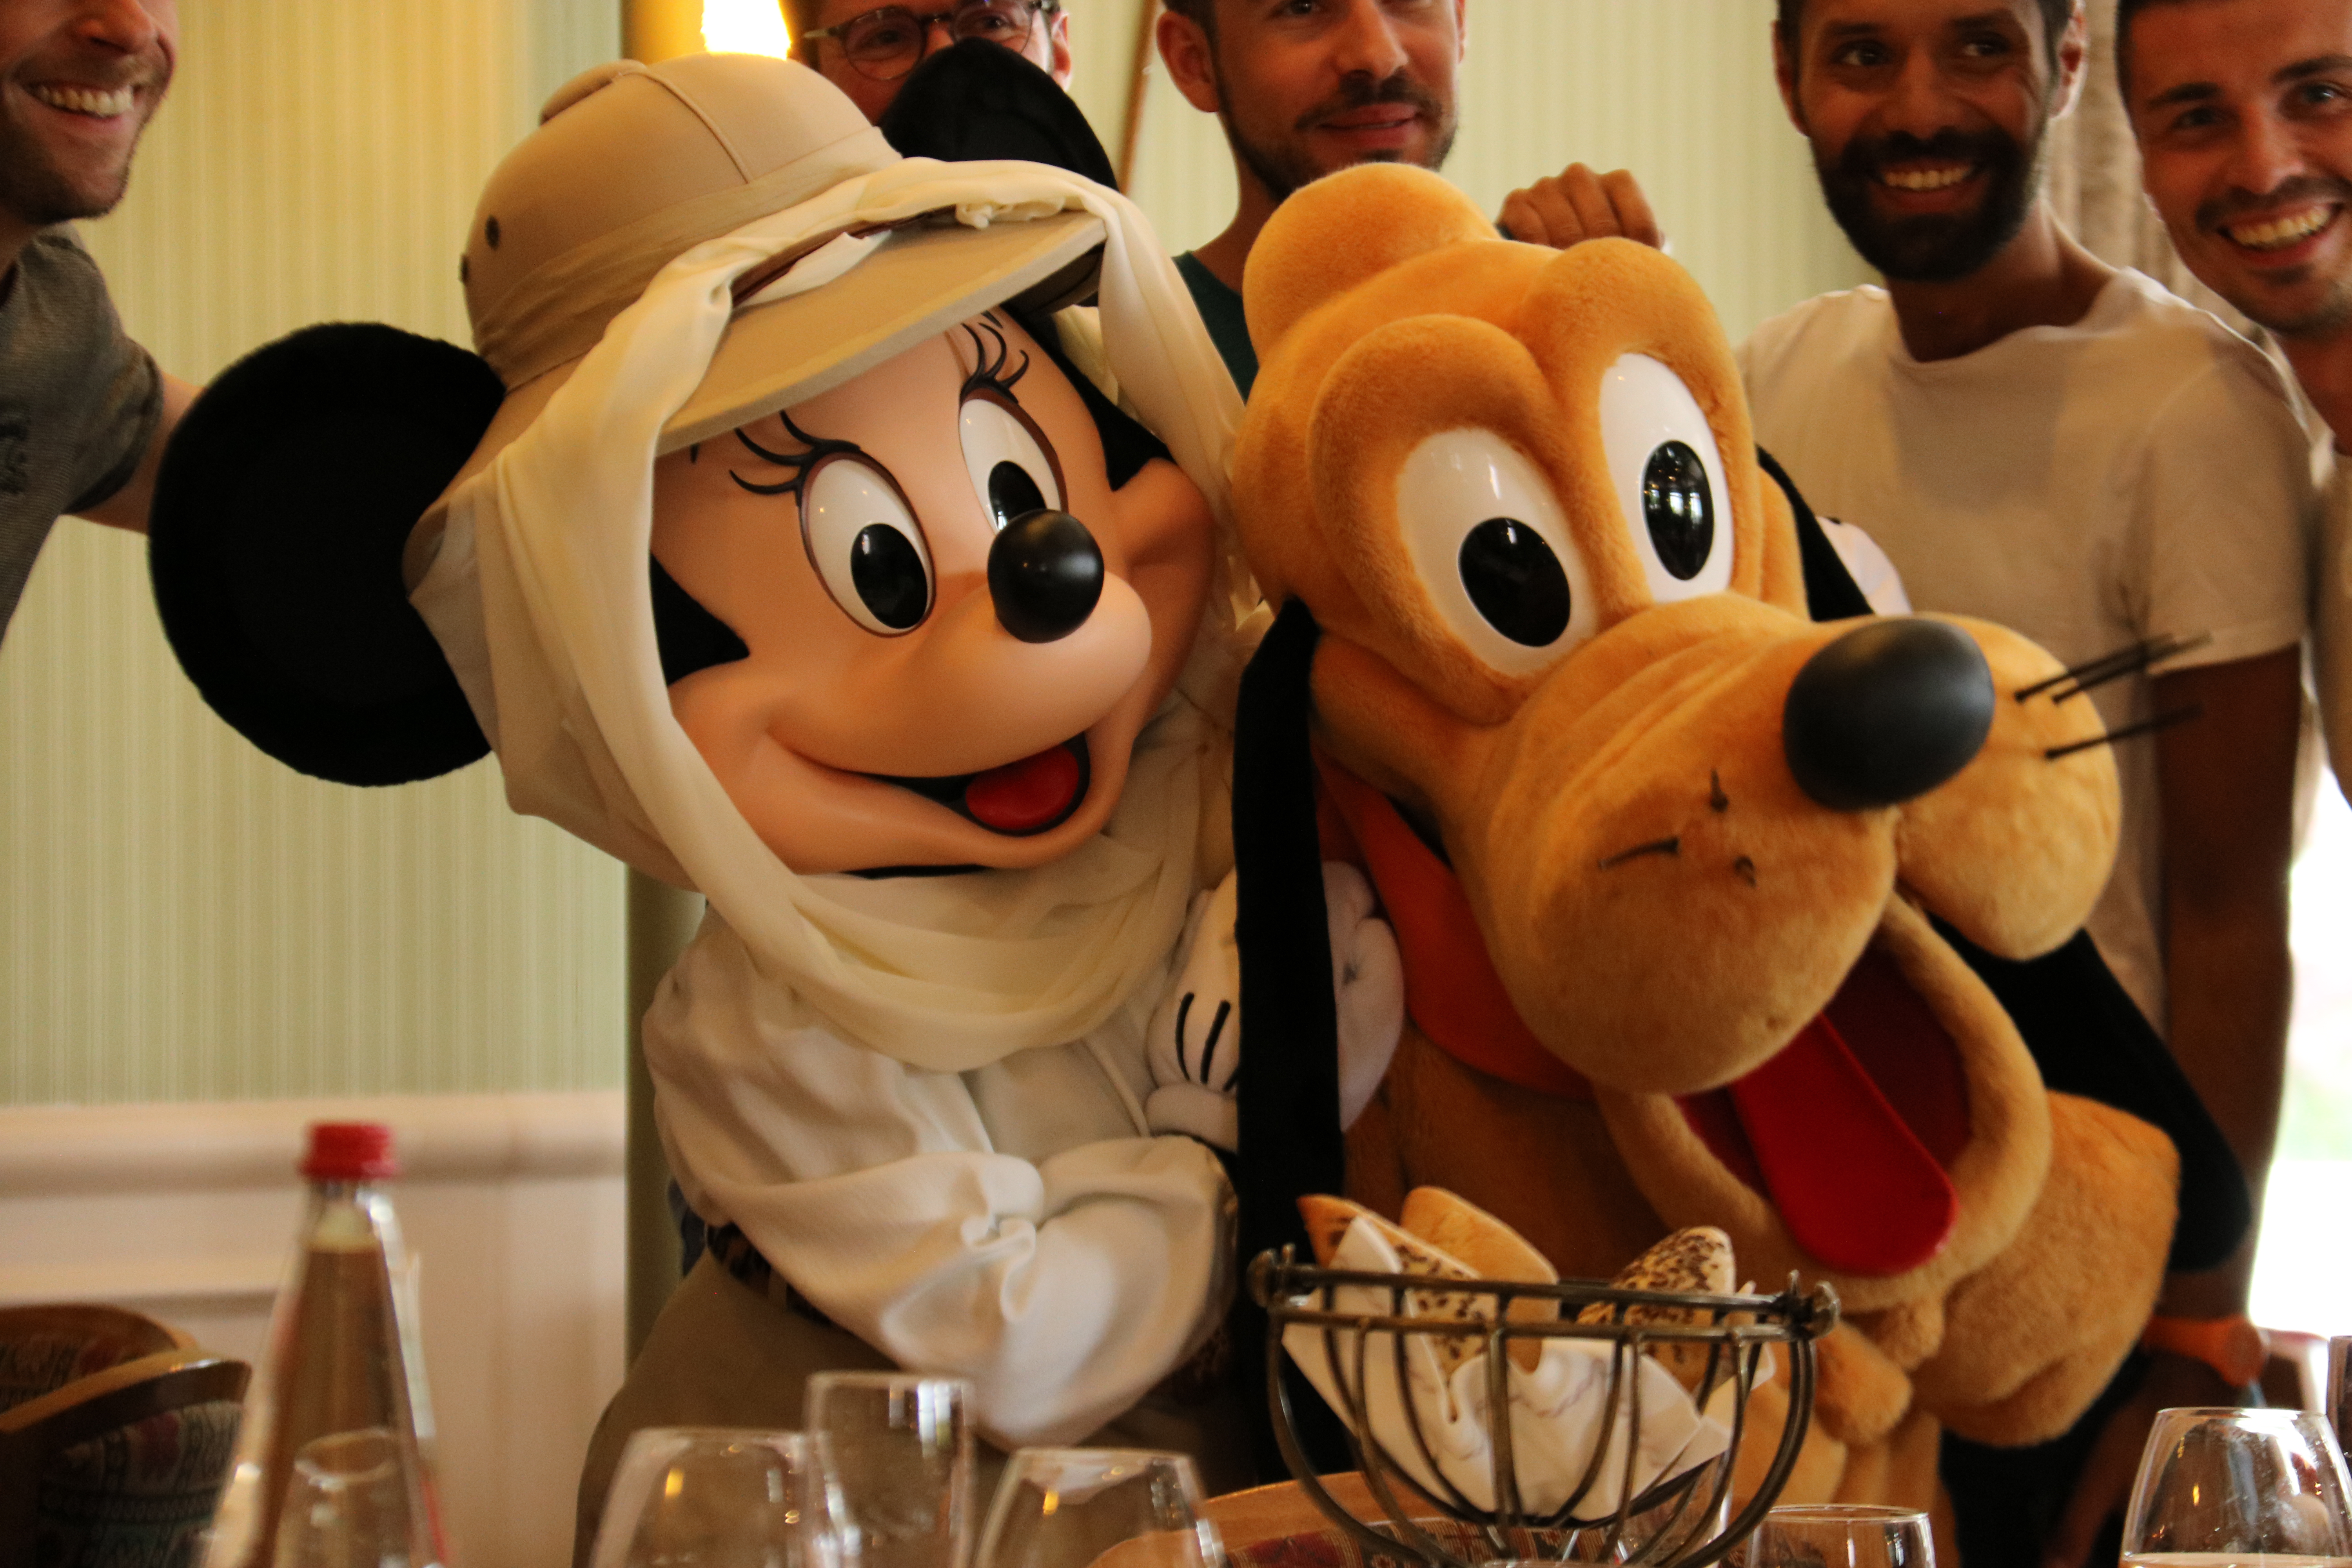 Minnie and Pluto